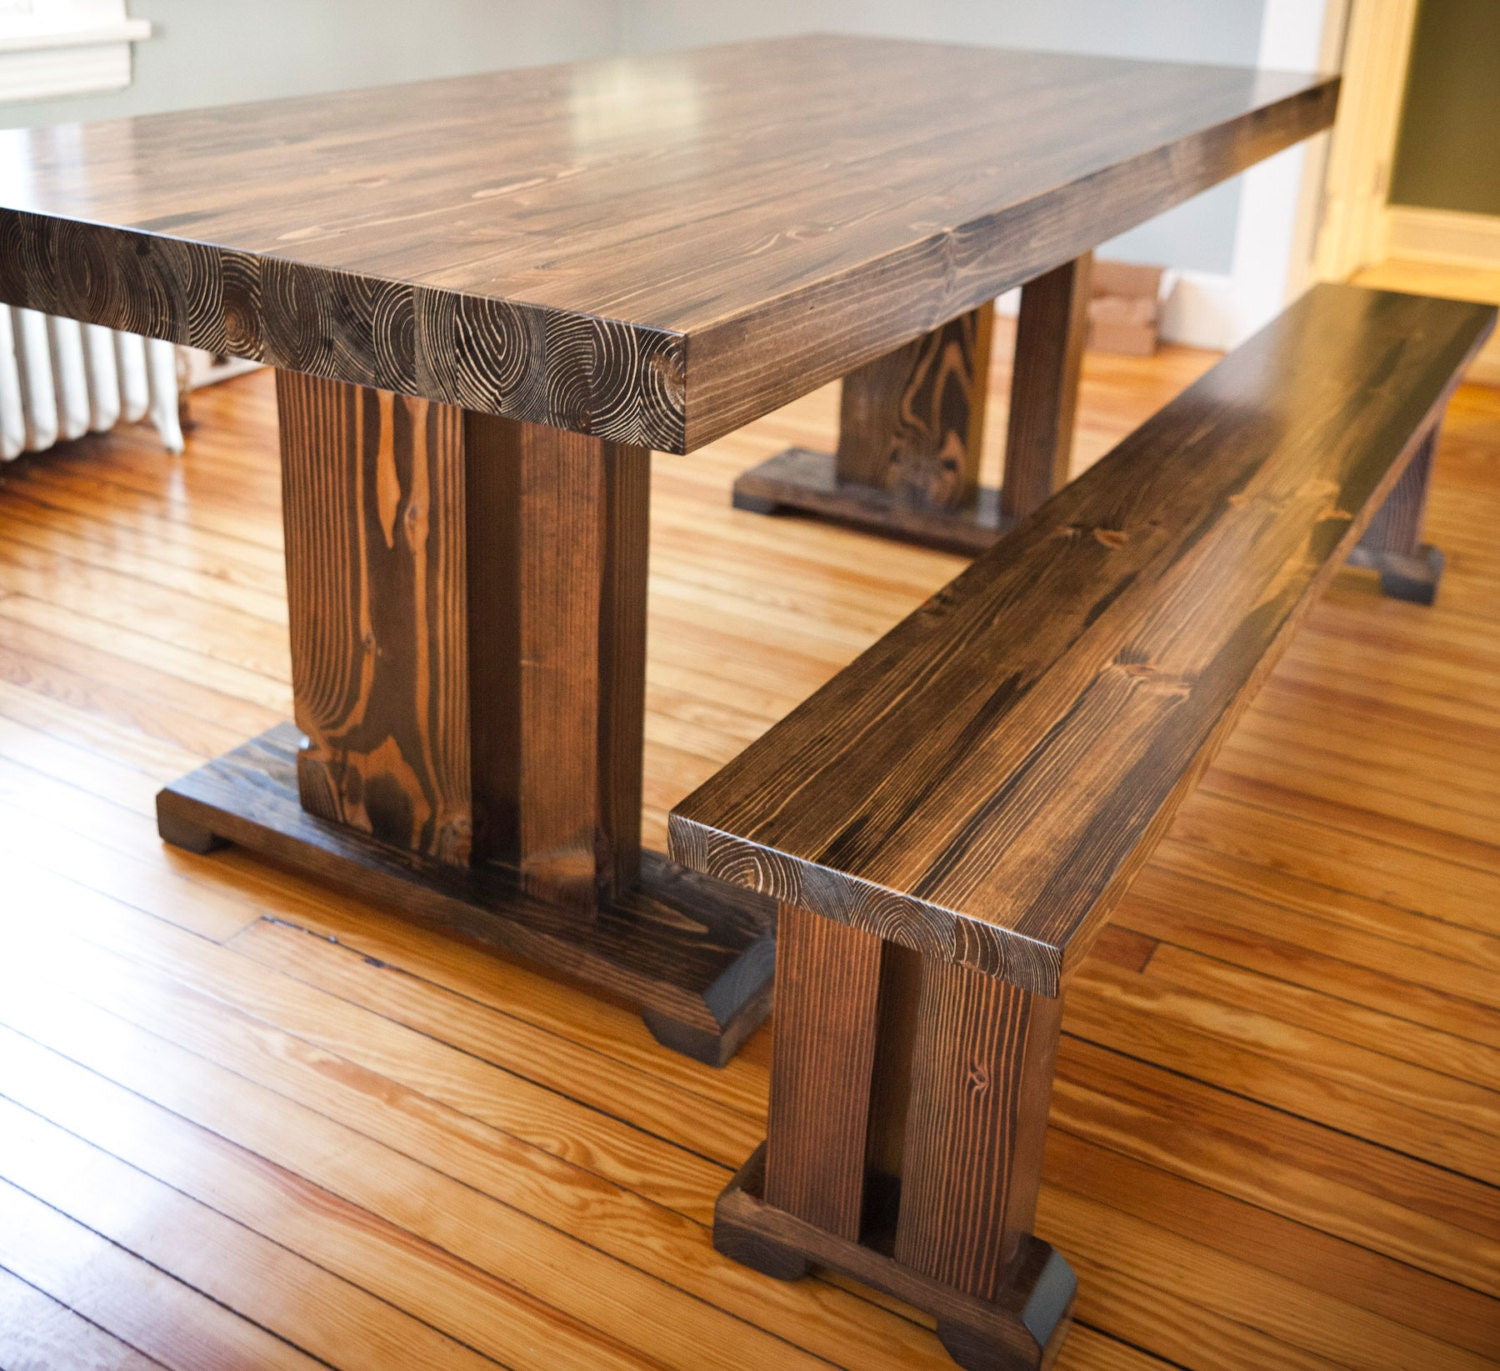 8ft butcher block style table solid wood farmhouse by emmorworks - Butcher block kitchen table set ...